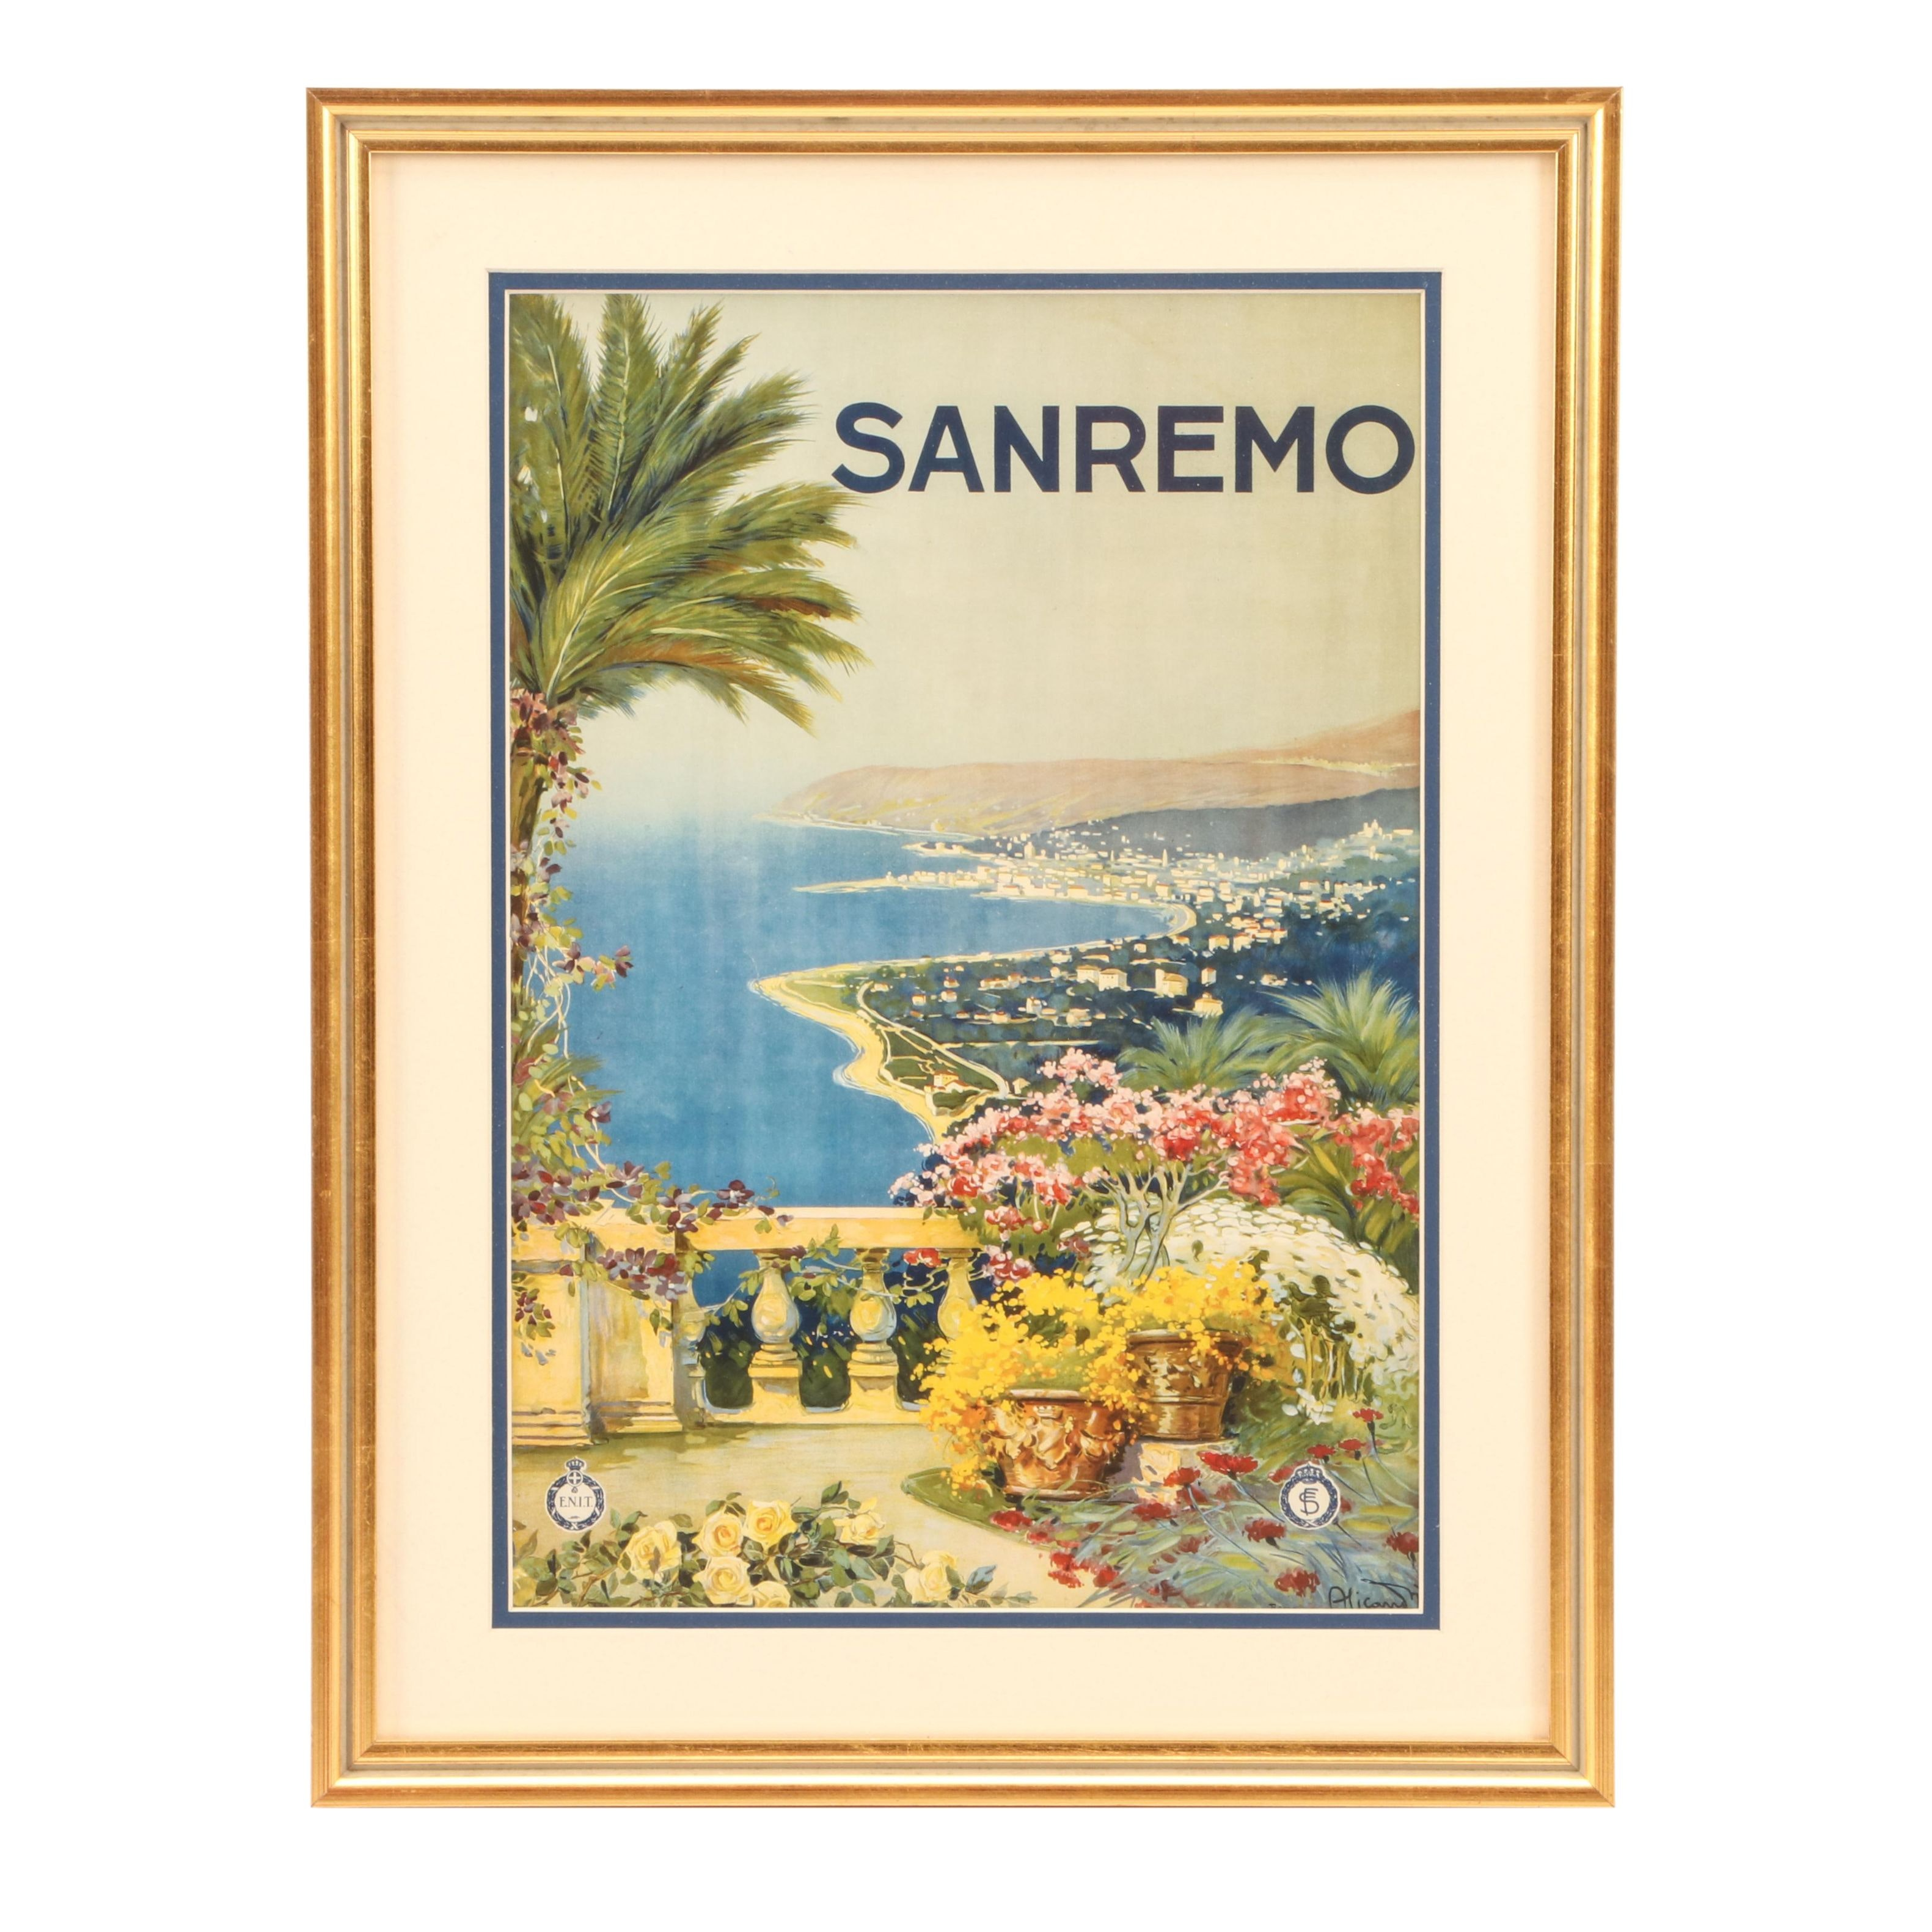 Offset Lithograph after 1920s Travel Poster for San Remo